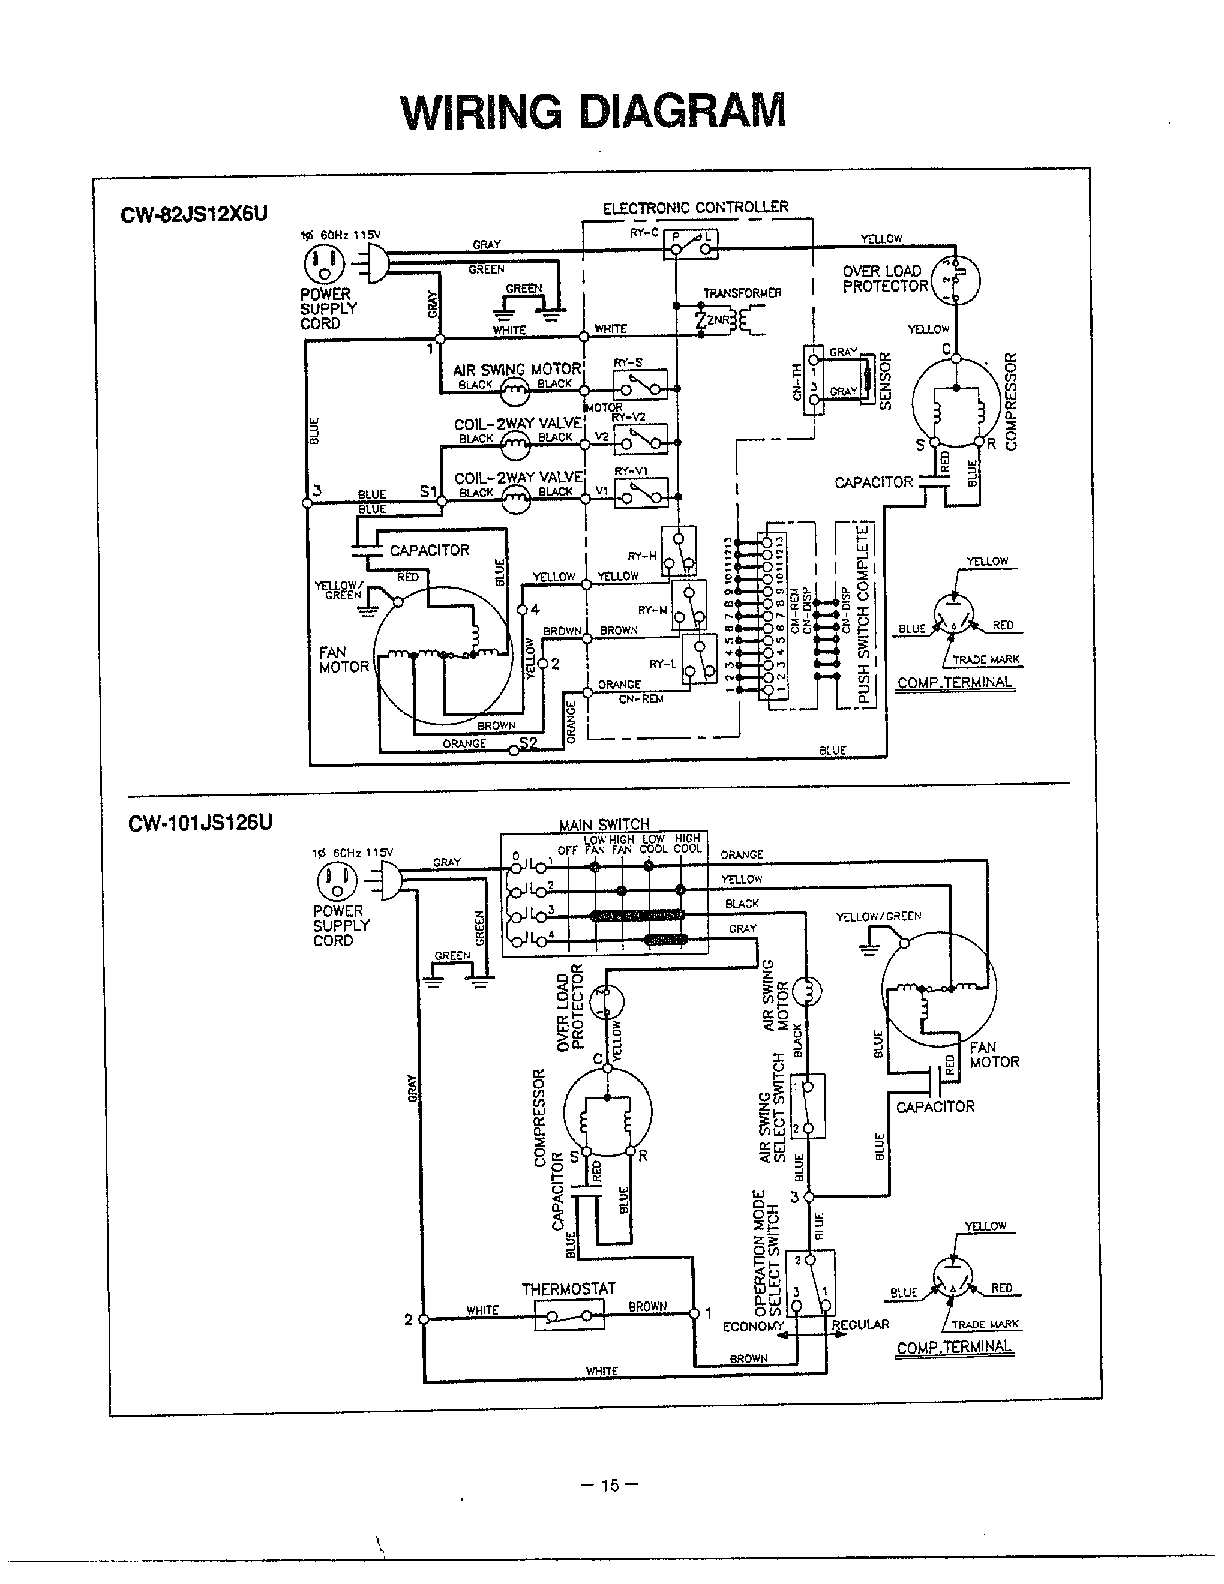 dub1000 subwoofer wiring diagram   32 wiring diagram images